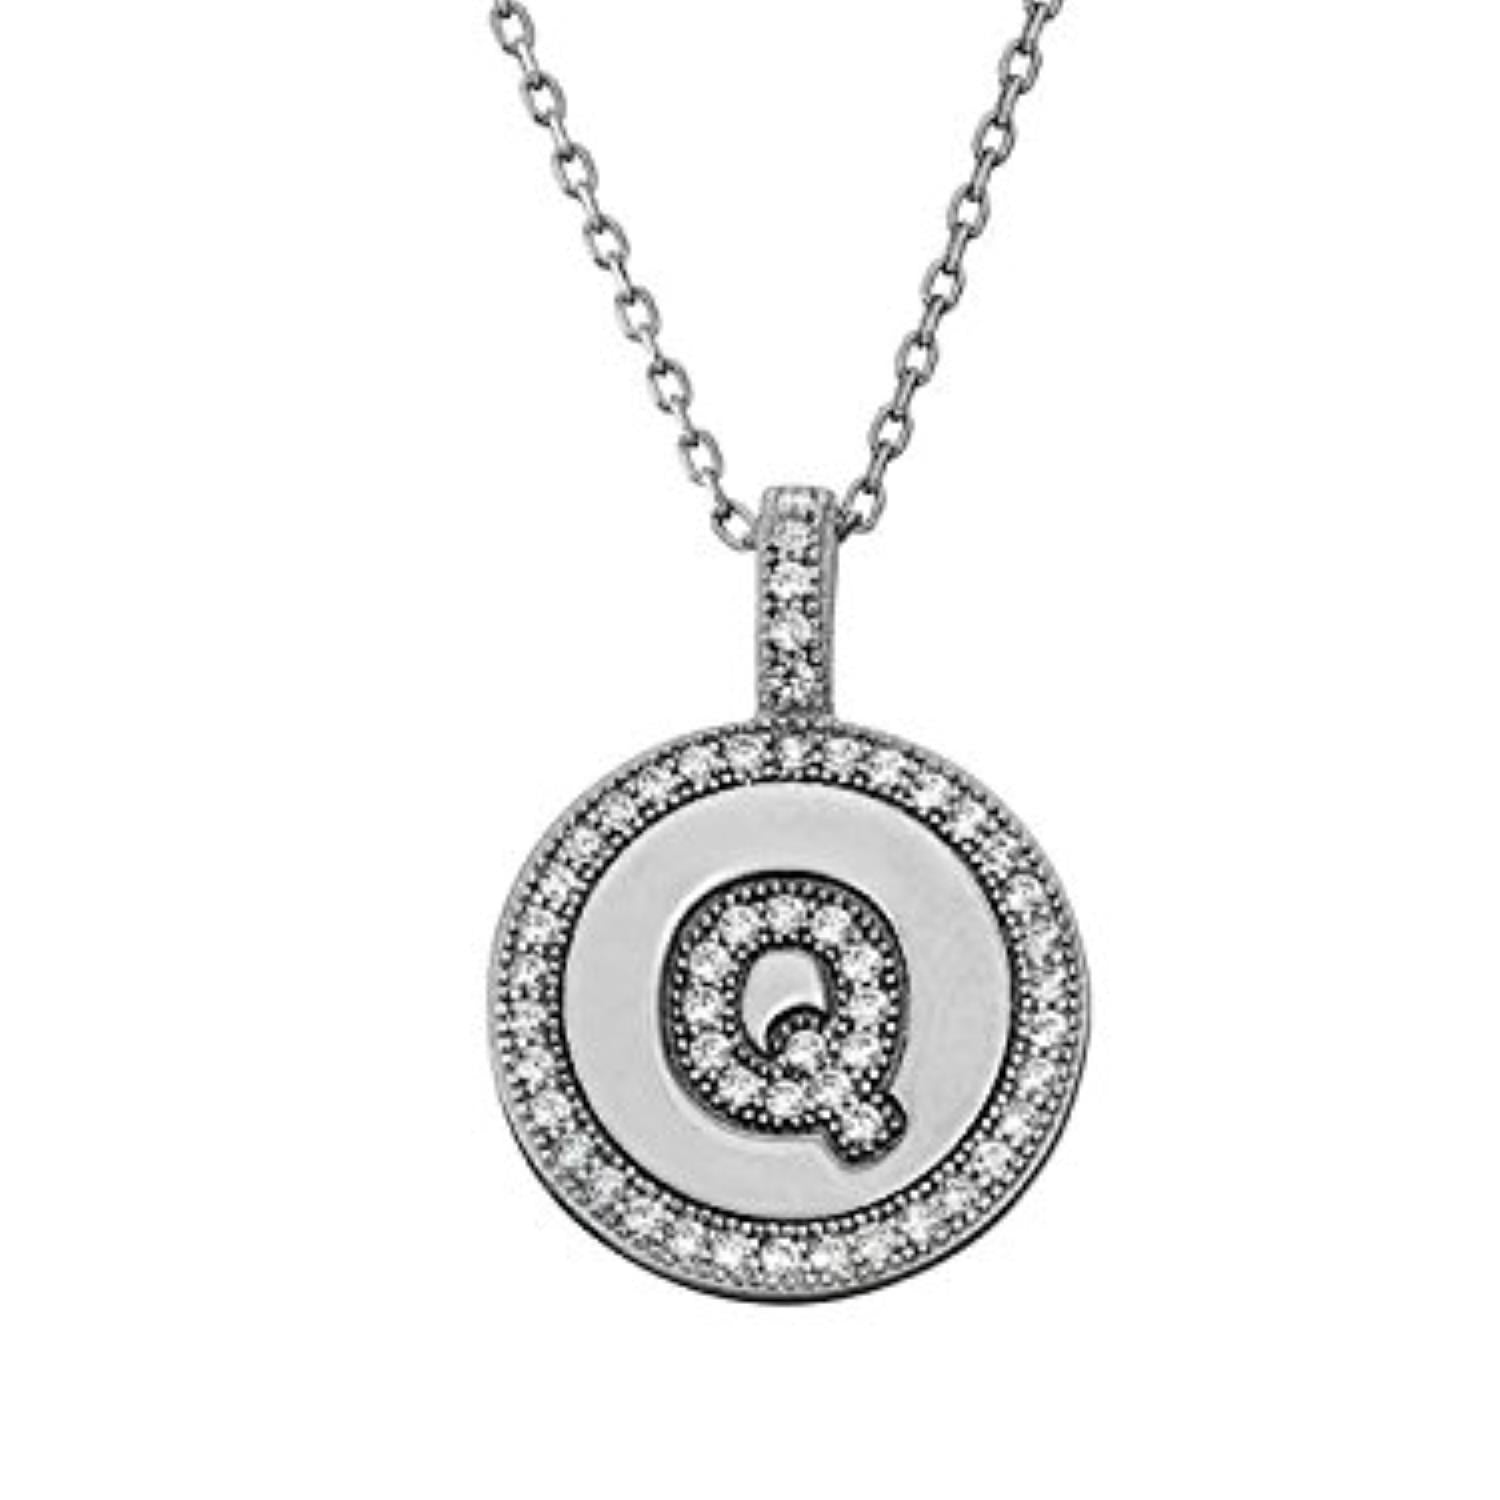 Letter Q Micro Pave Initial CZ Pendant .925 Sterling Silver